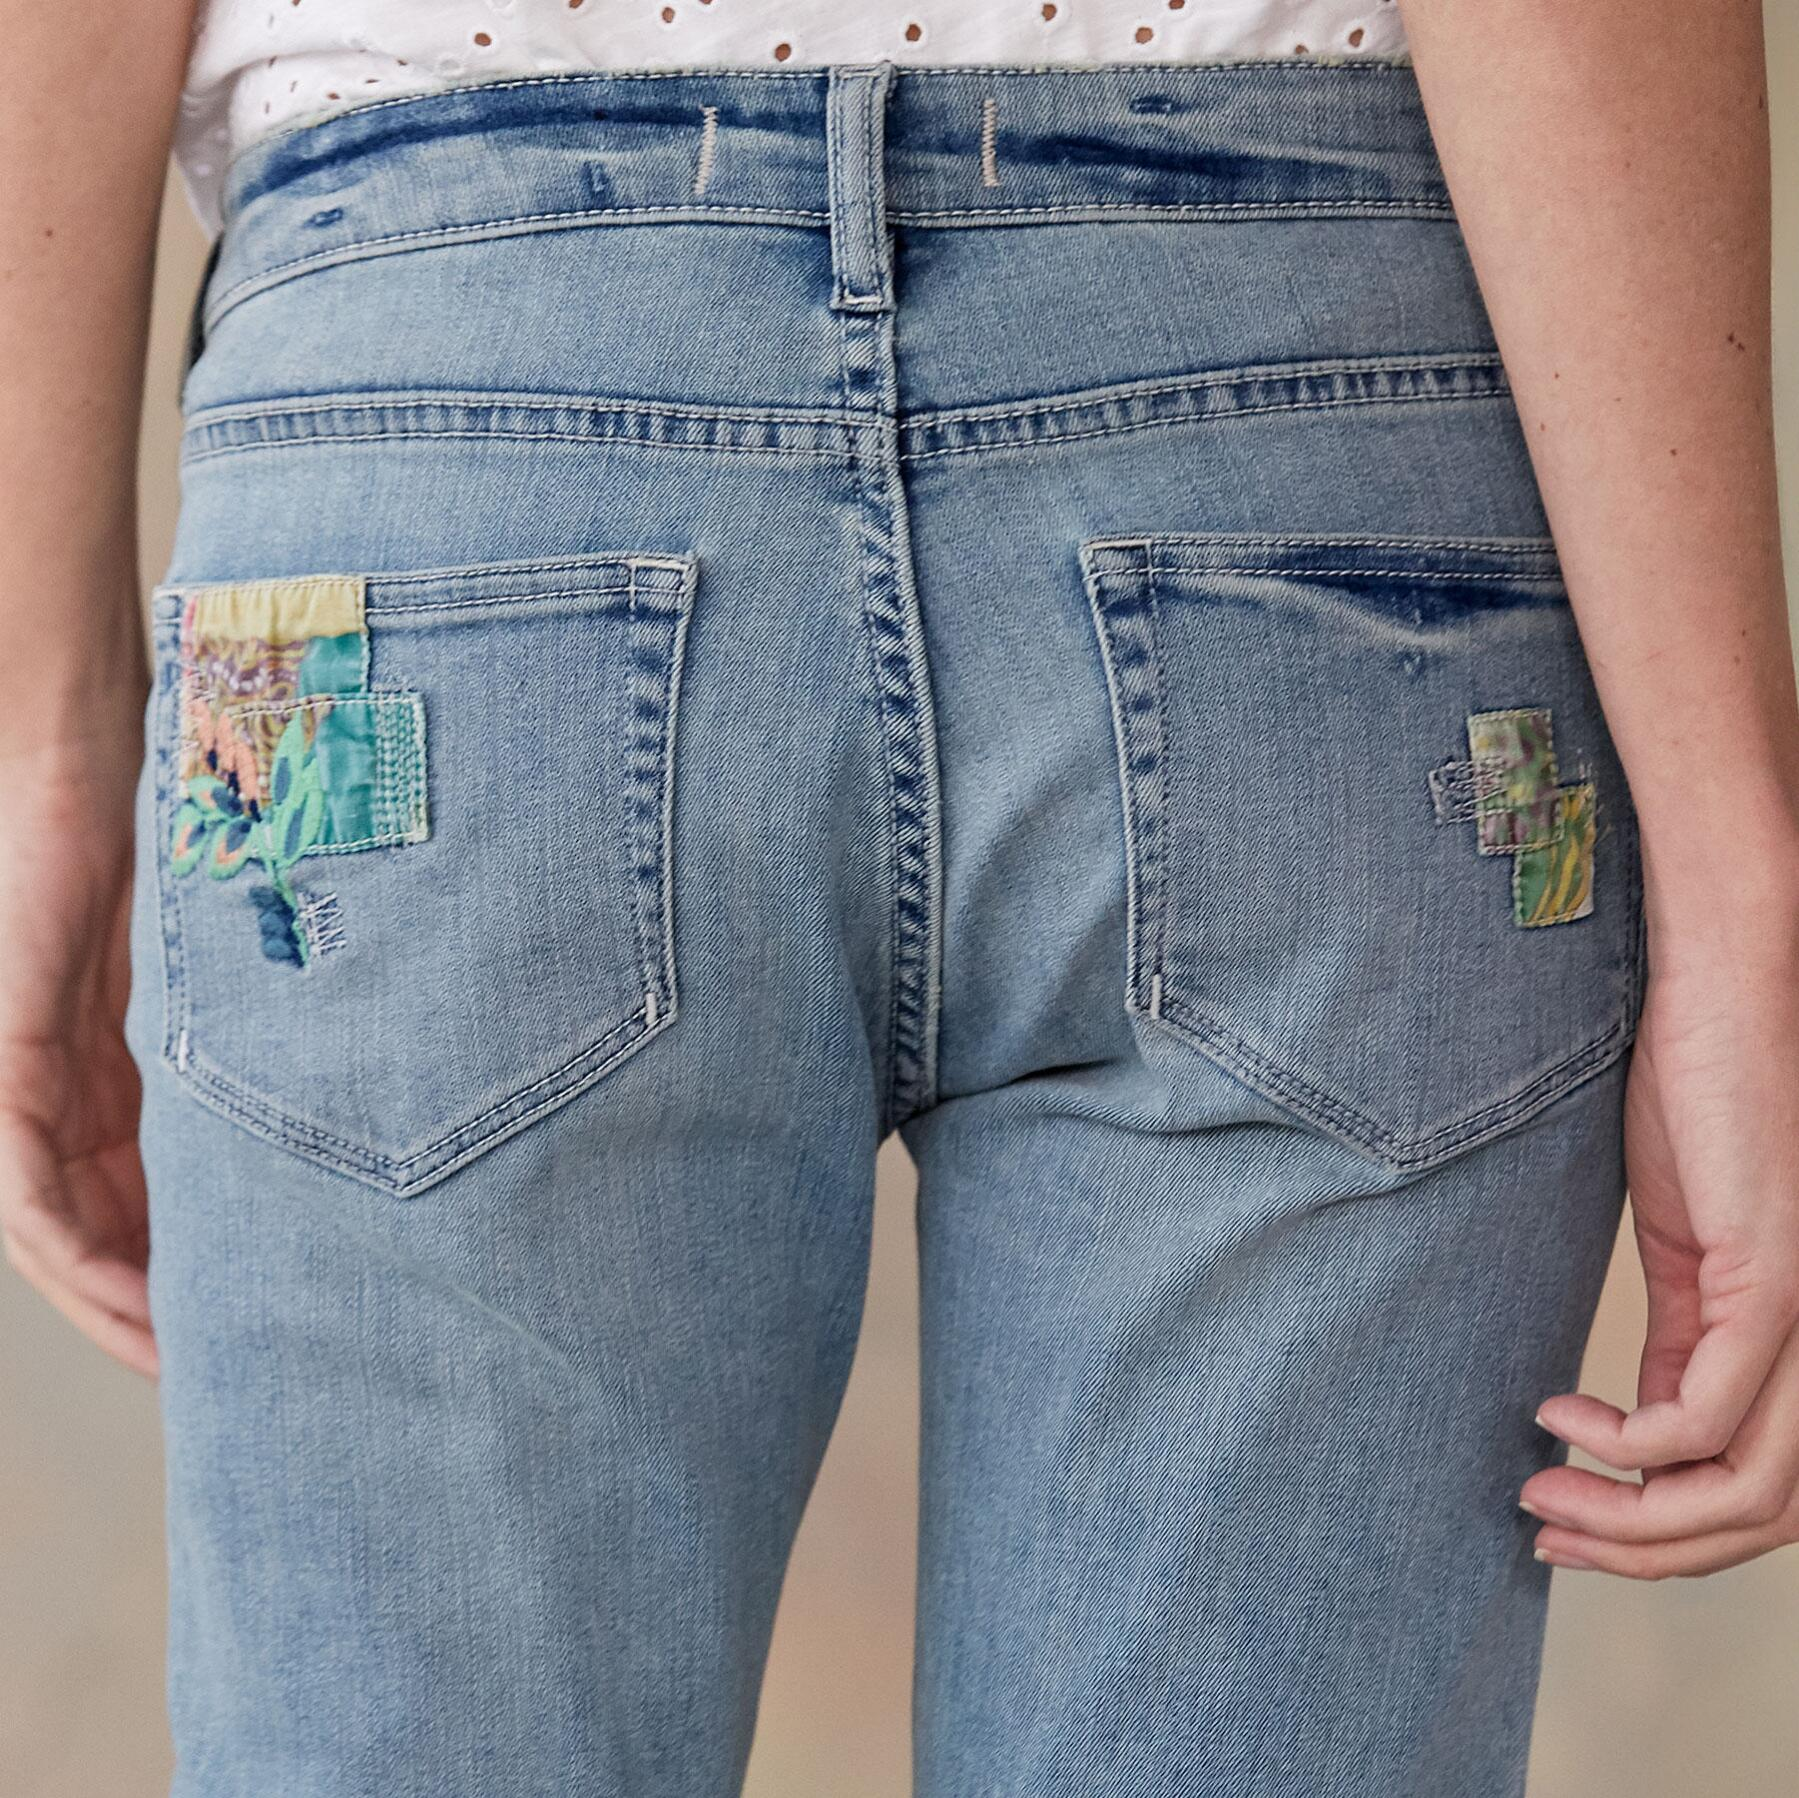 MAGNOLIA PATCH JEANS: View 3